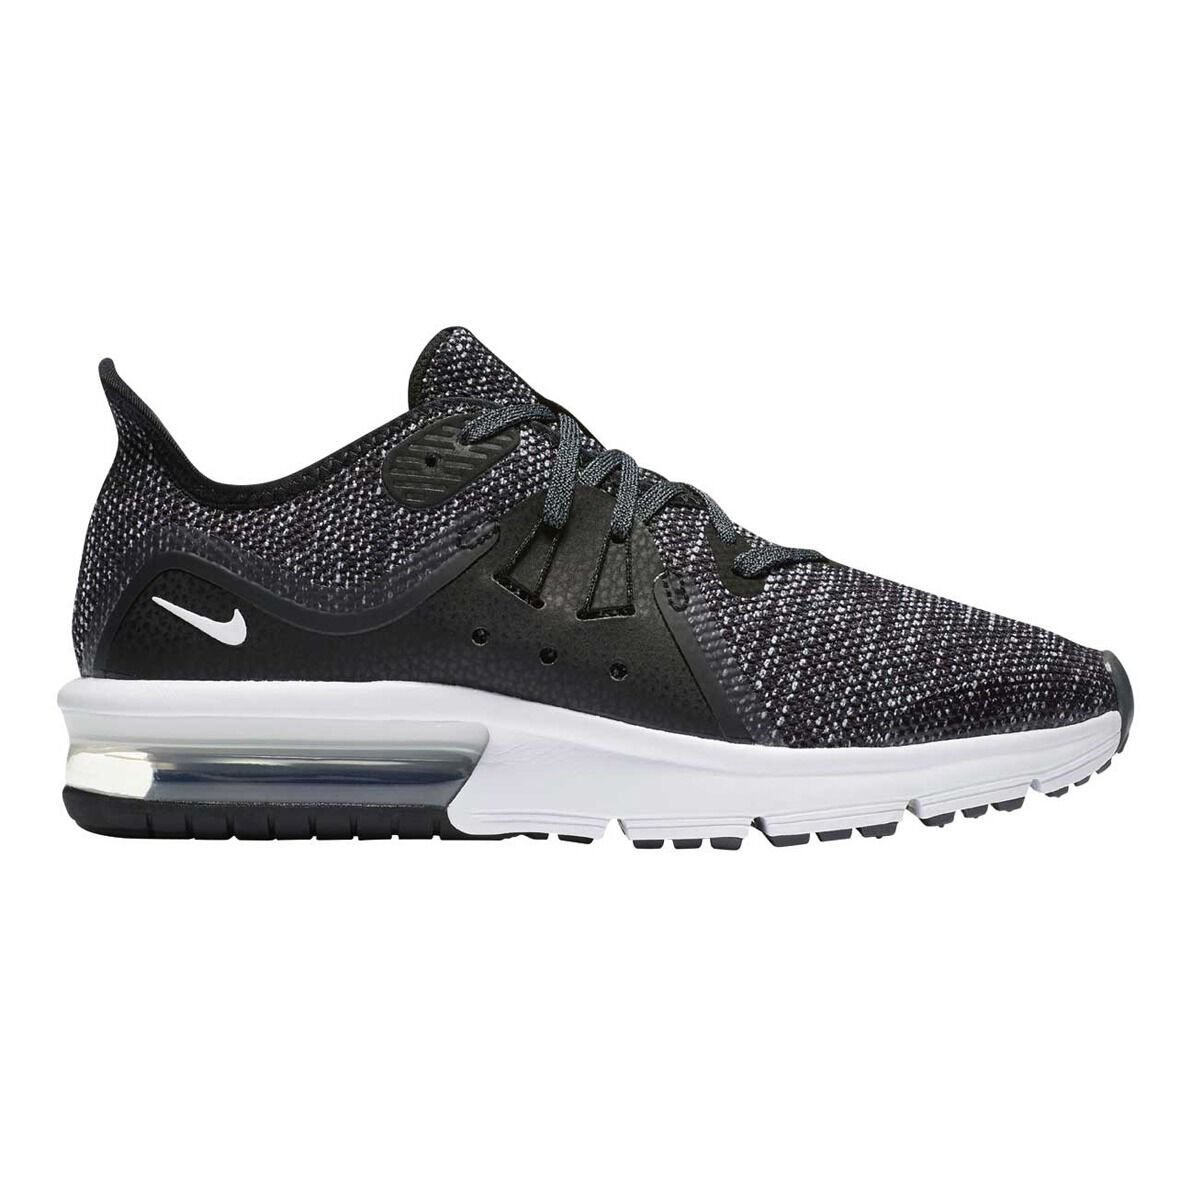 on sale 835c5 ade10 ... where to buy nike air max sequent 3 boys running shoes black white us 6  black